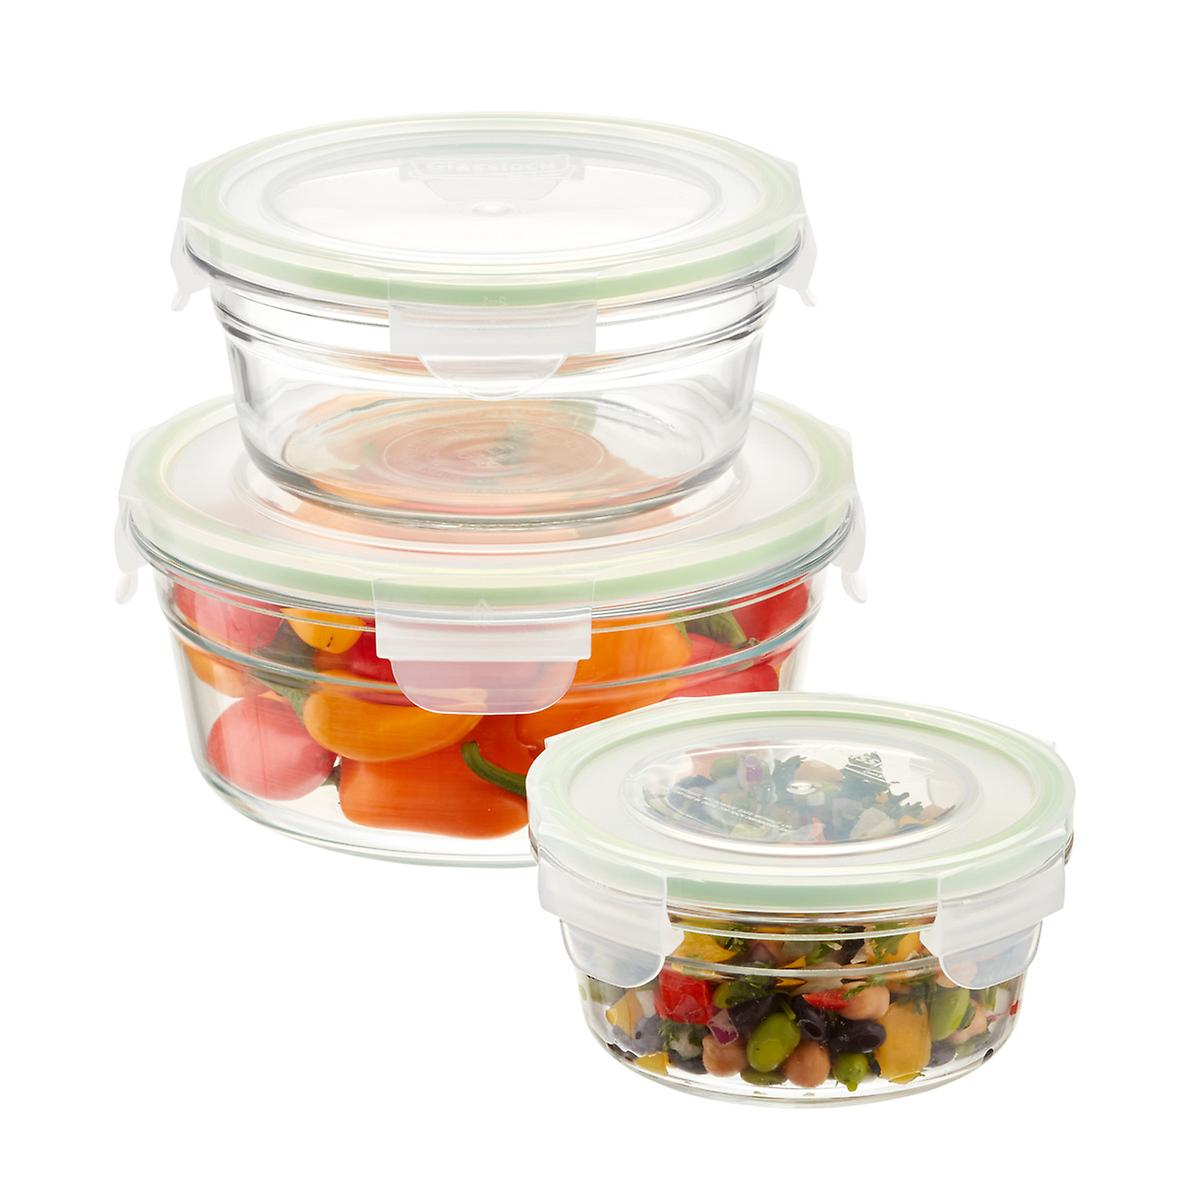 Glasslock Round Food Containers with Lids The Container Store